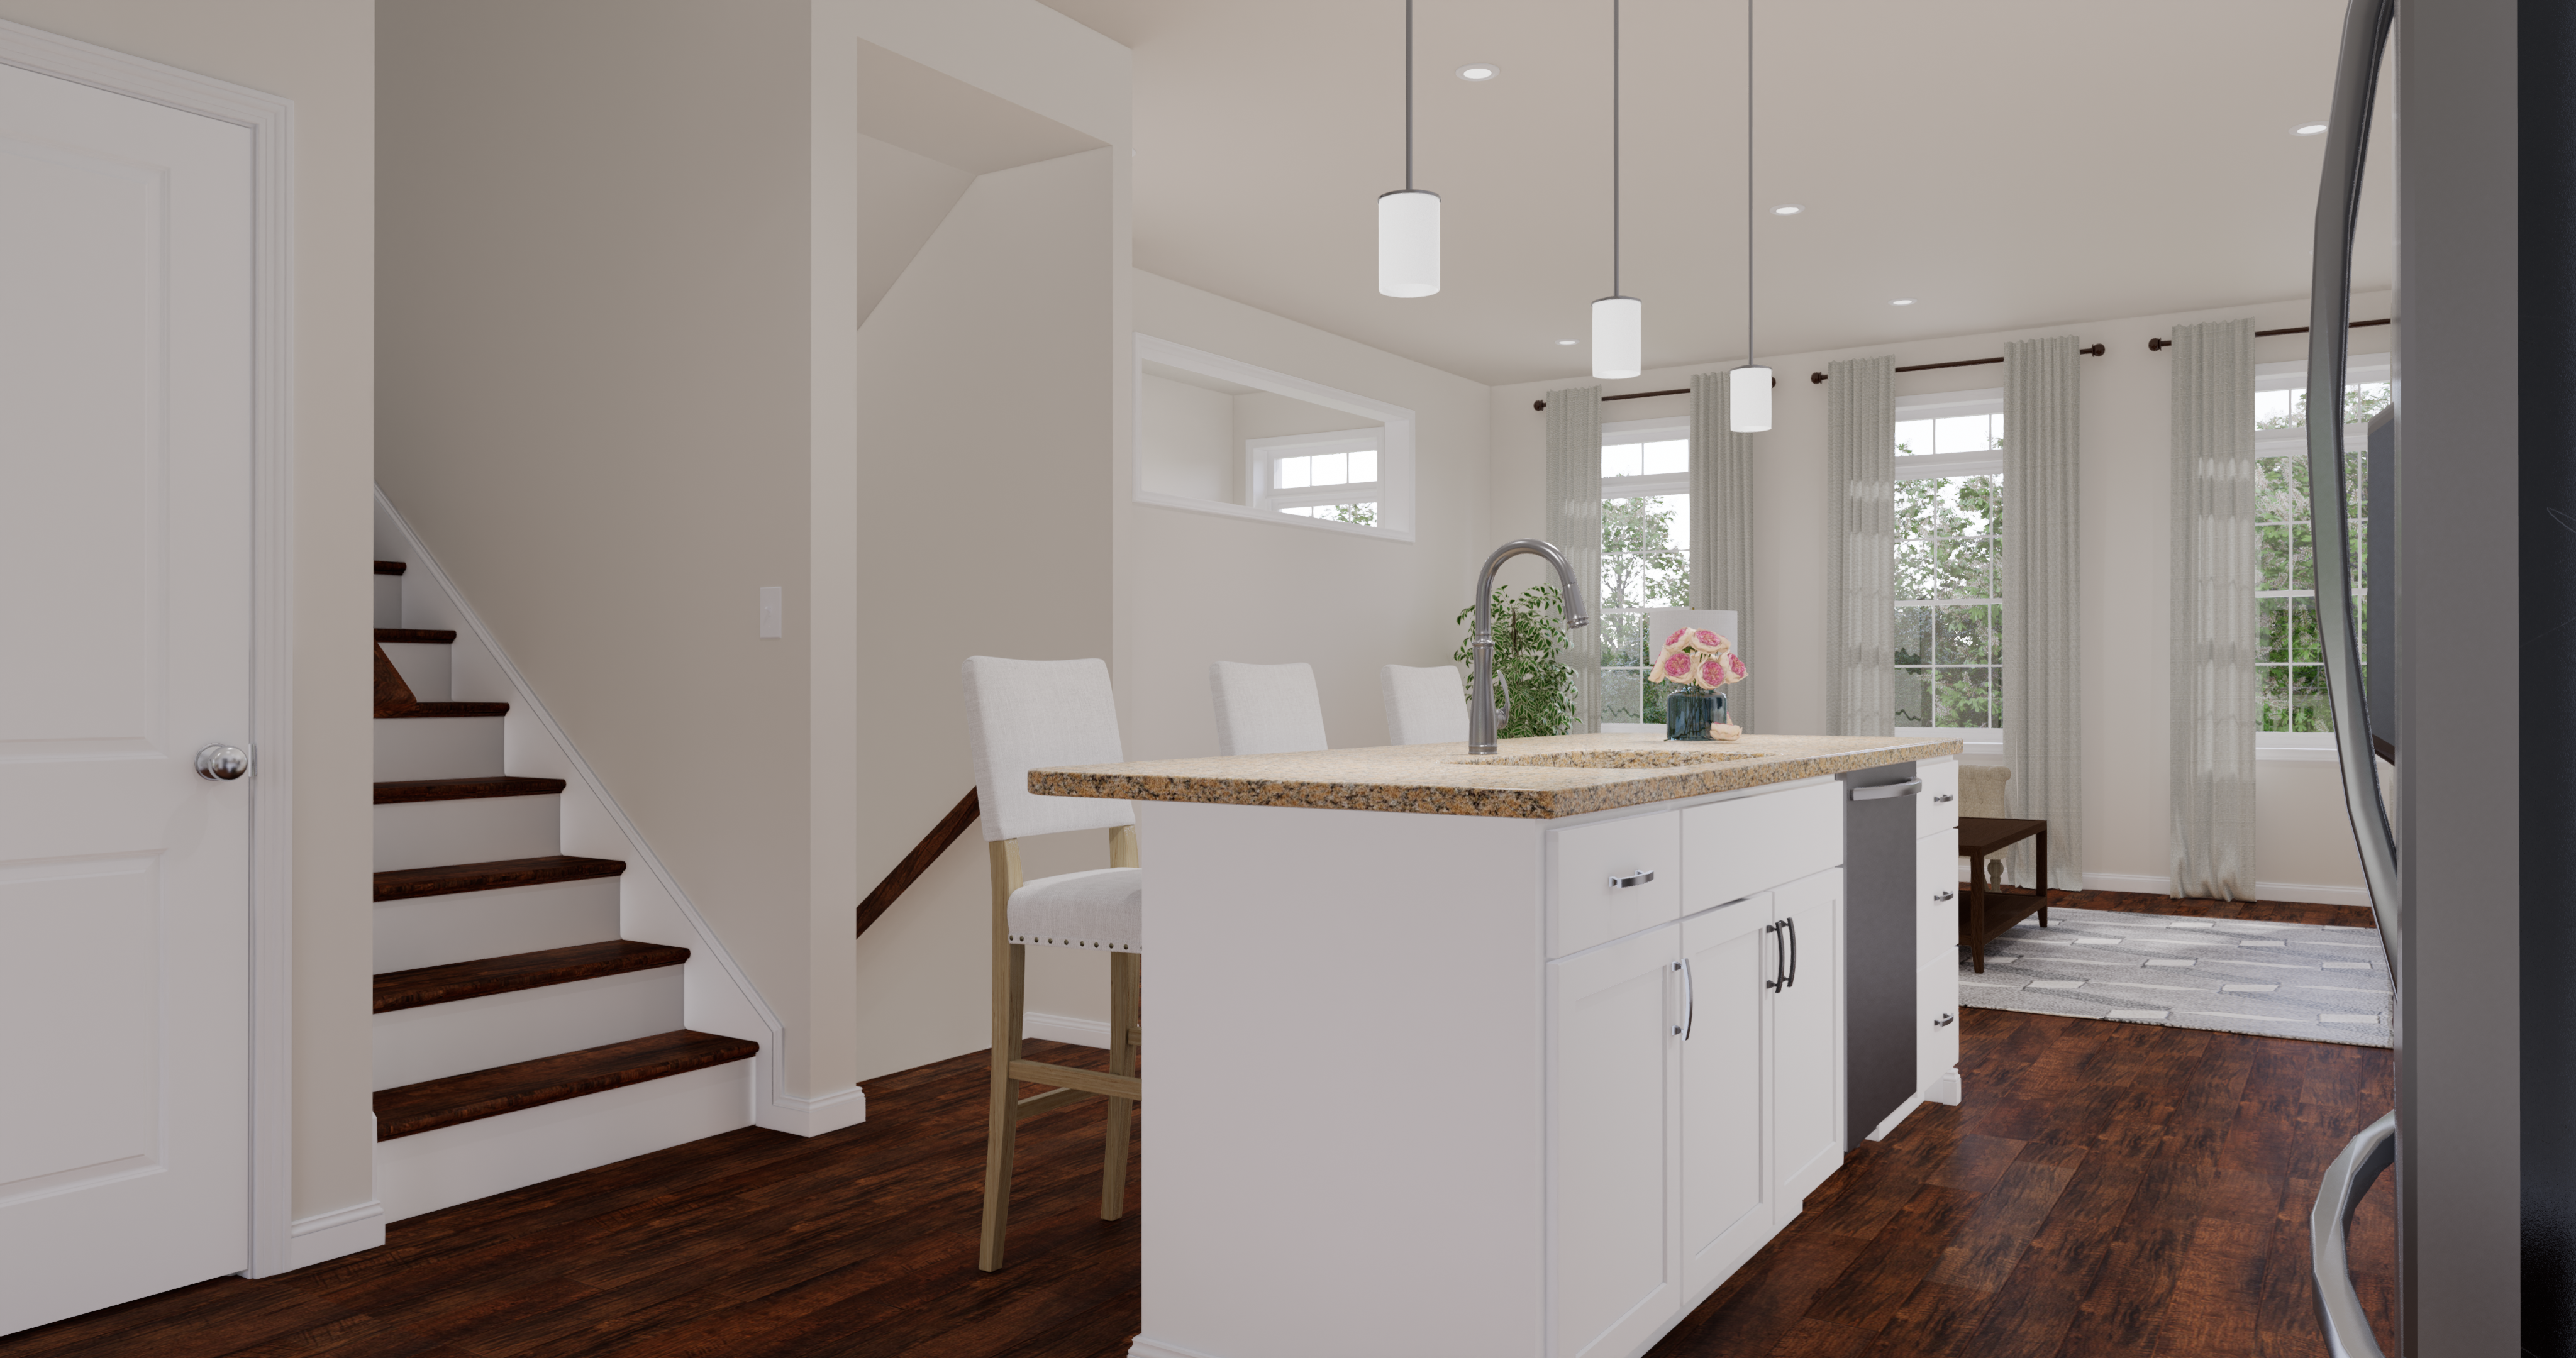 rendering of the gourmet kitchen island in the Alexandria townhome design